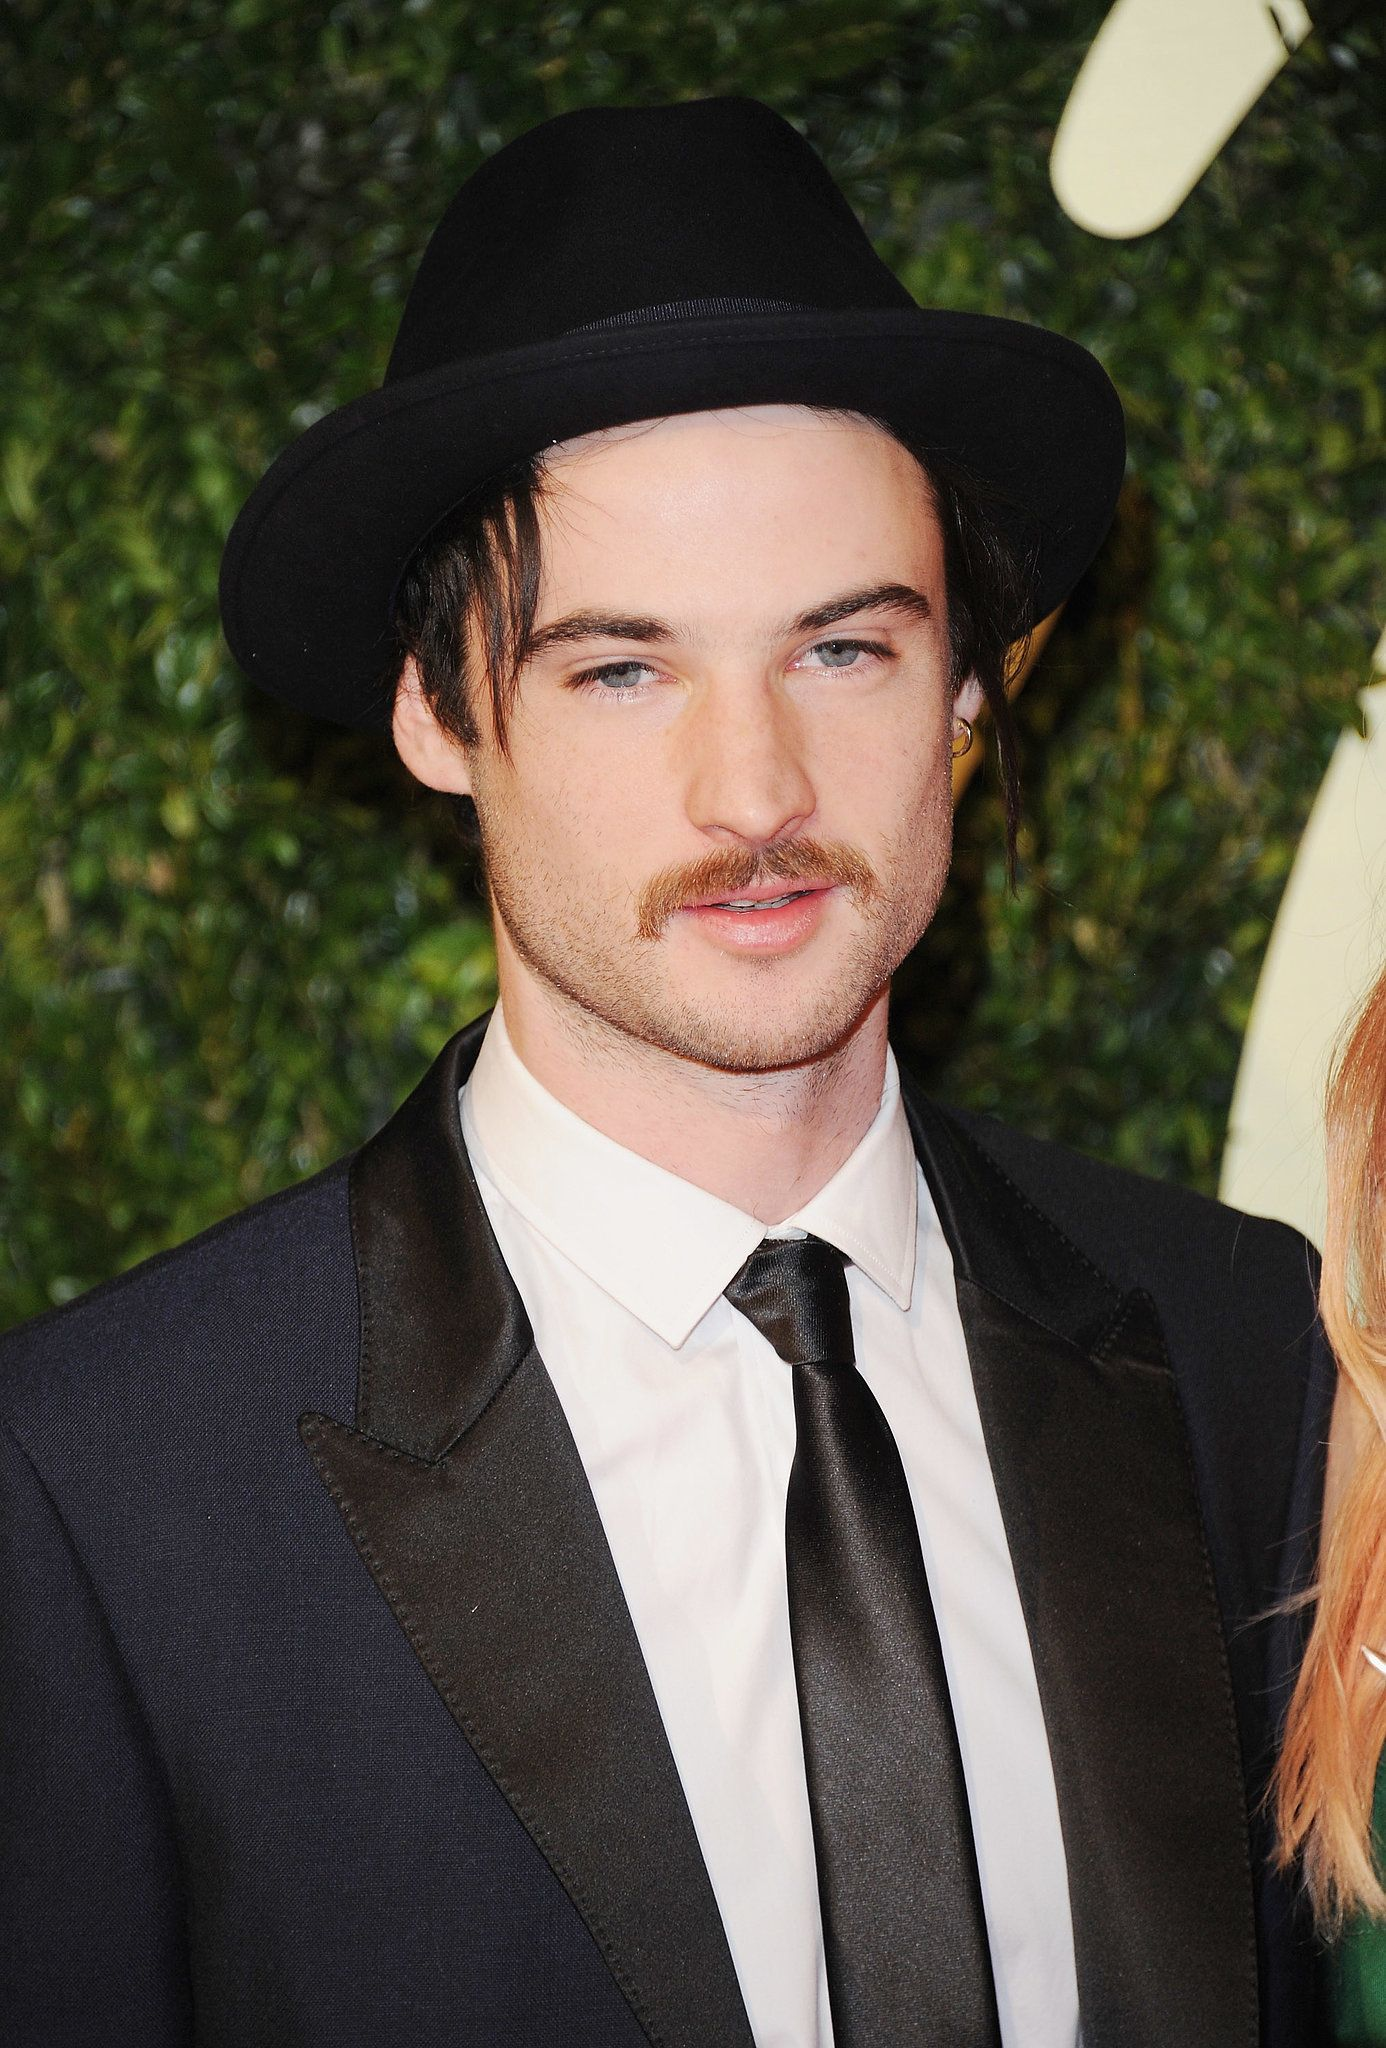 images Tom Sturridge (born 1985)